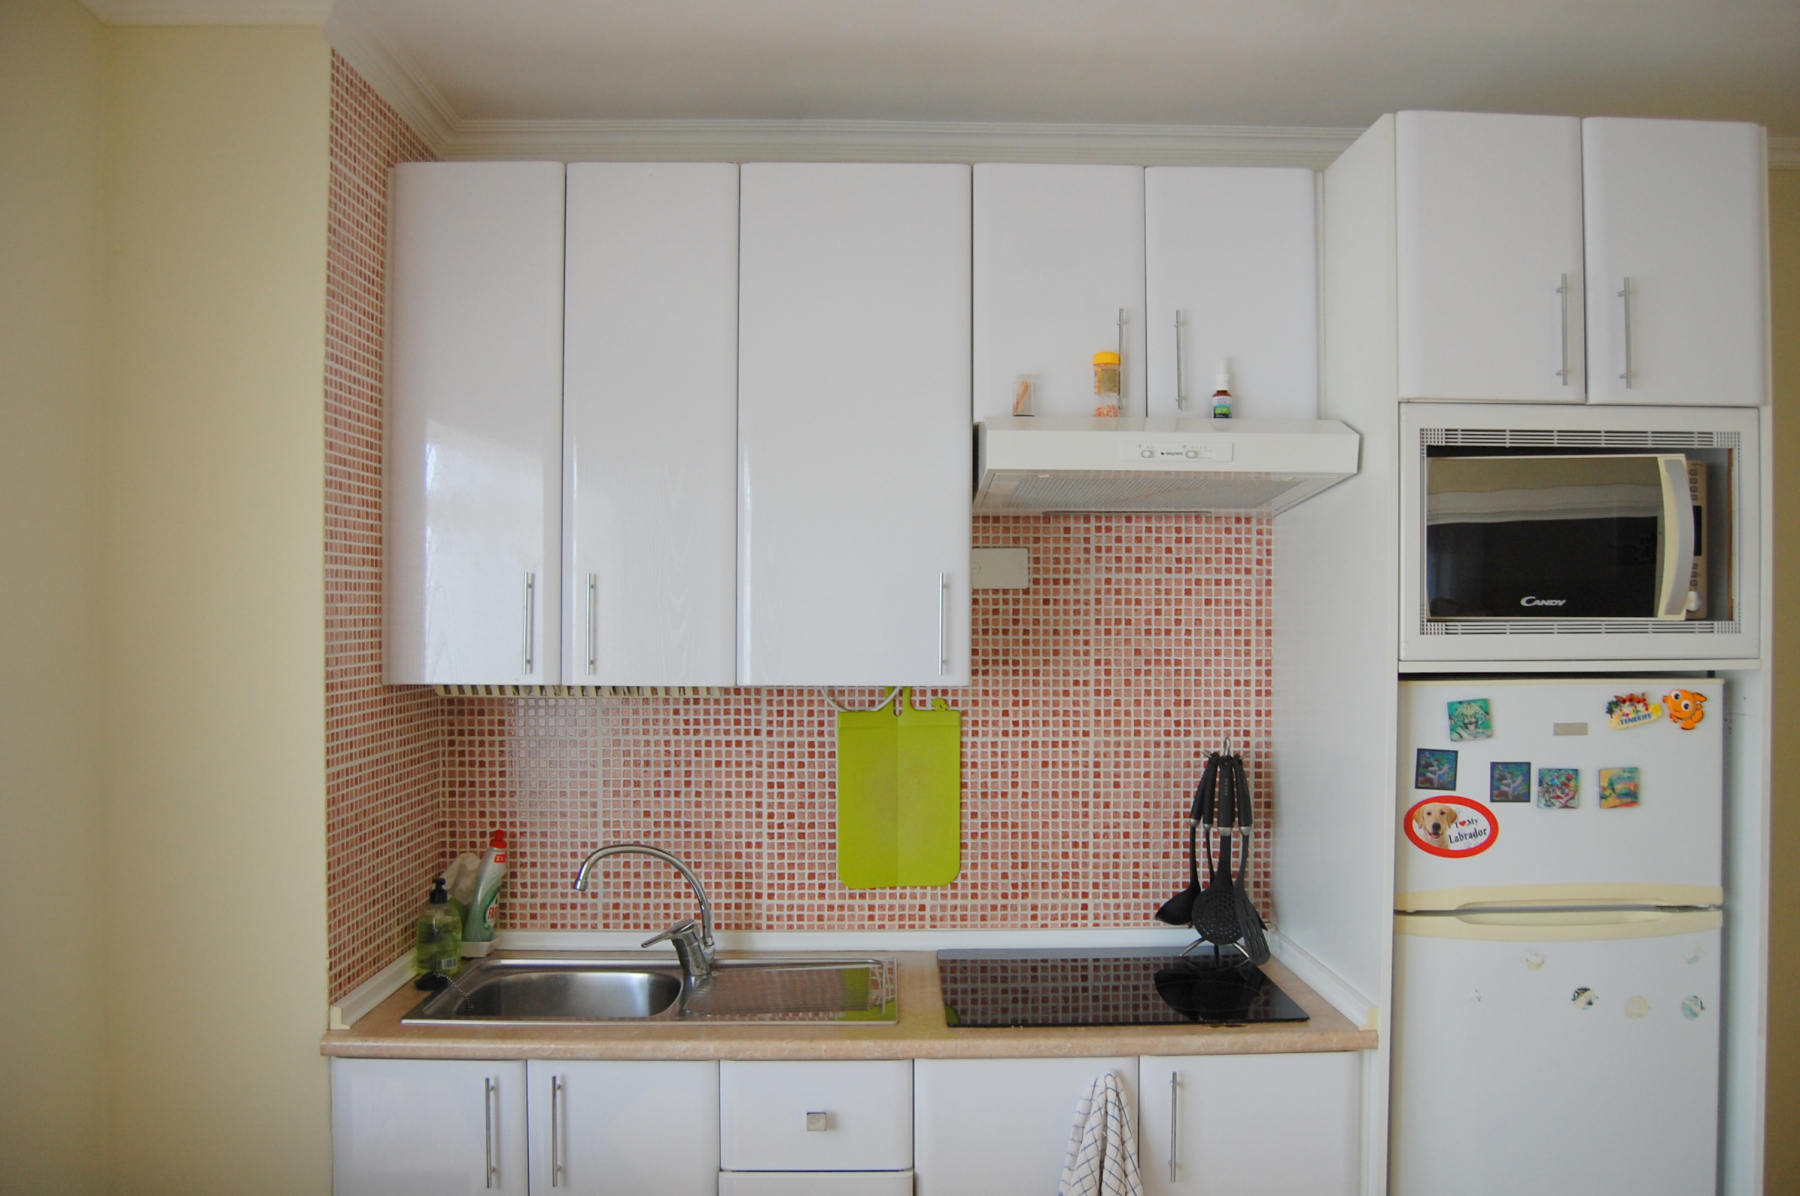 Properties for Sale in Tenerife, Canary Islands, Spain | SylkWayStar Real Estate. 1 Bedroom apartment Las Americas. Image-25193